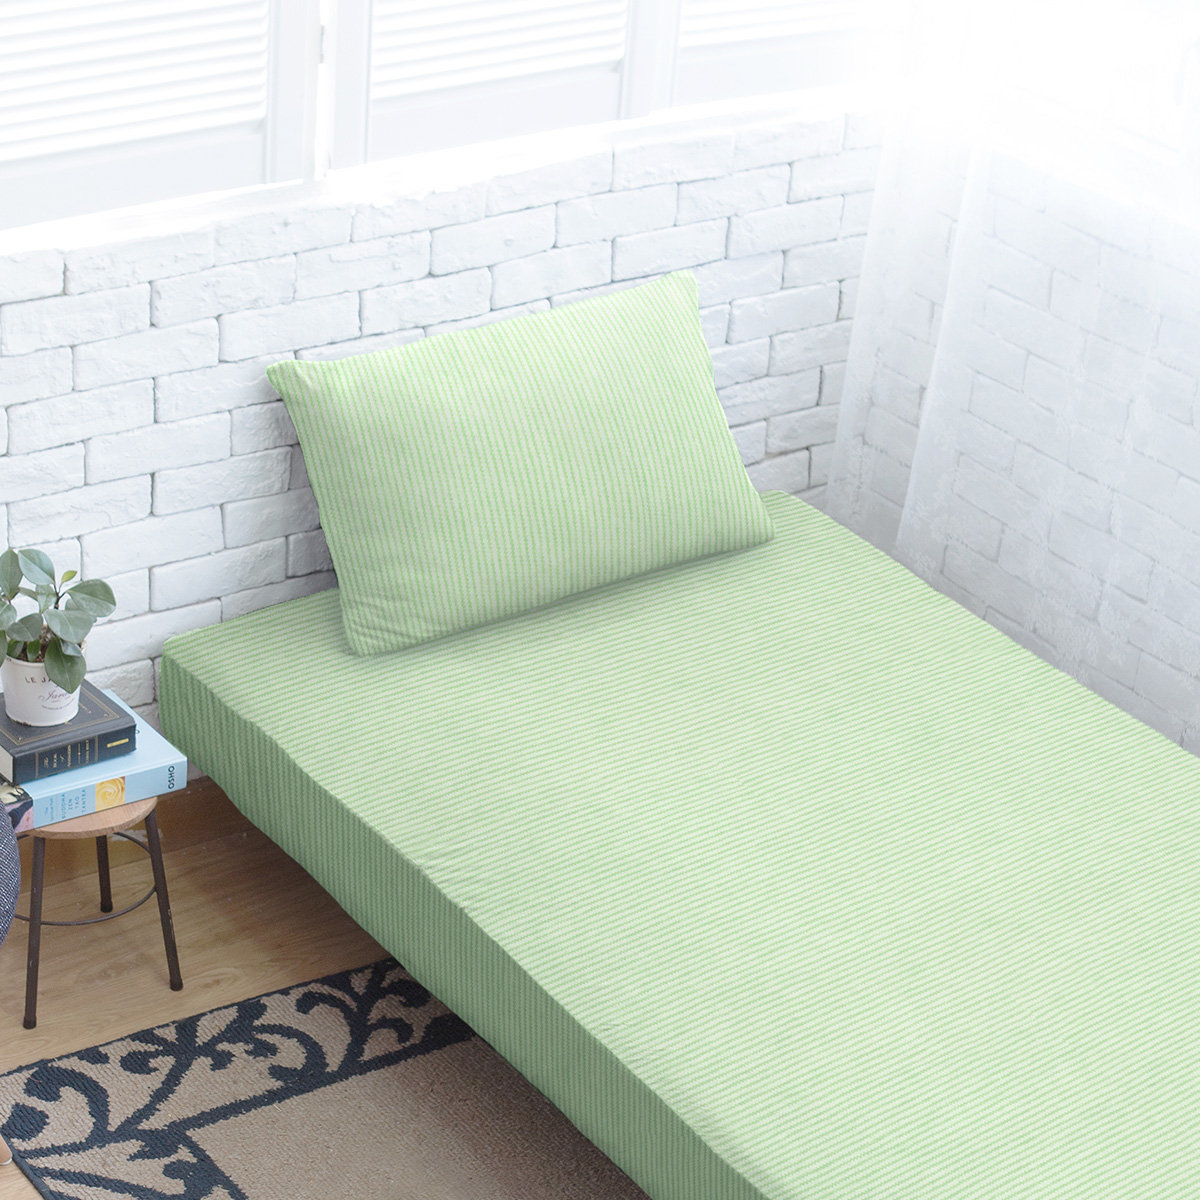 100% Cotton Fitted Sheet + Pillowcase - Apple Green